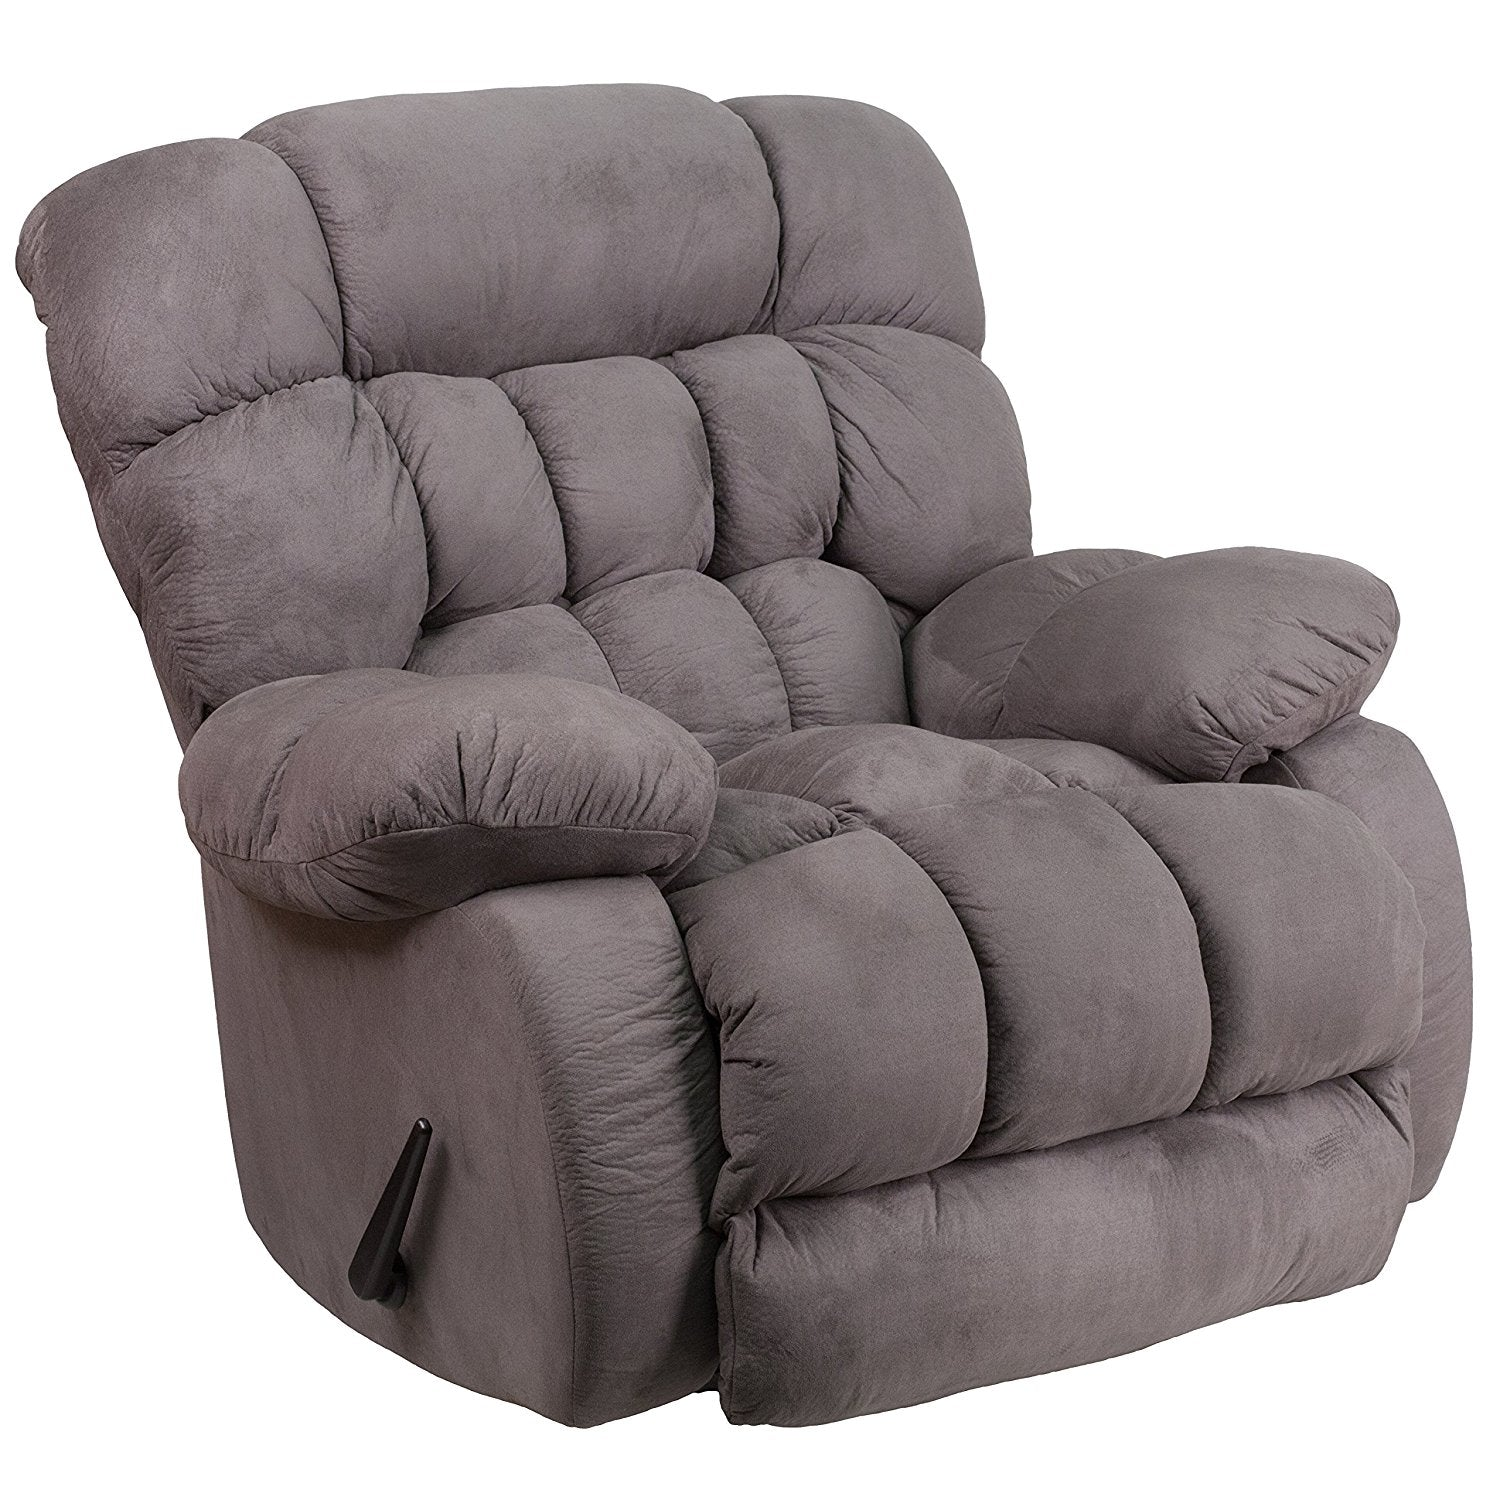 Softsuede Graphite Microfiber Rocker Recliner 18534 Product Photo